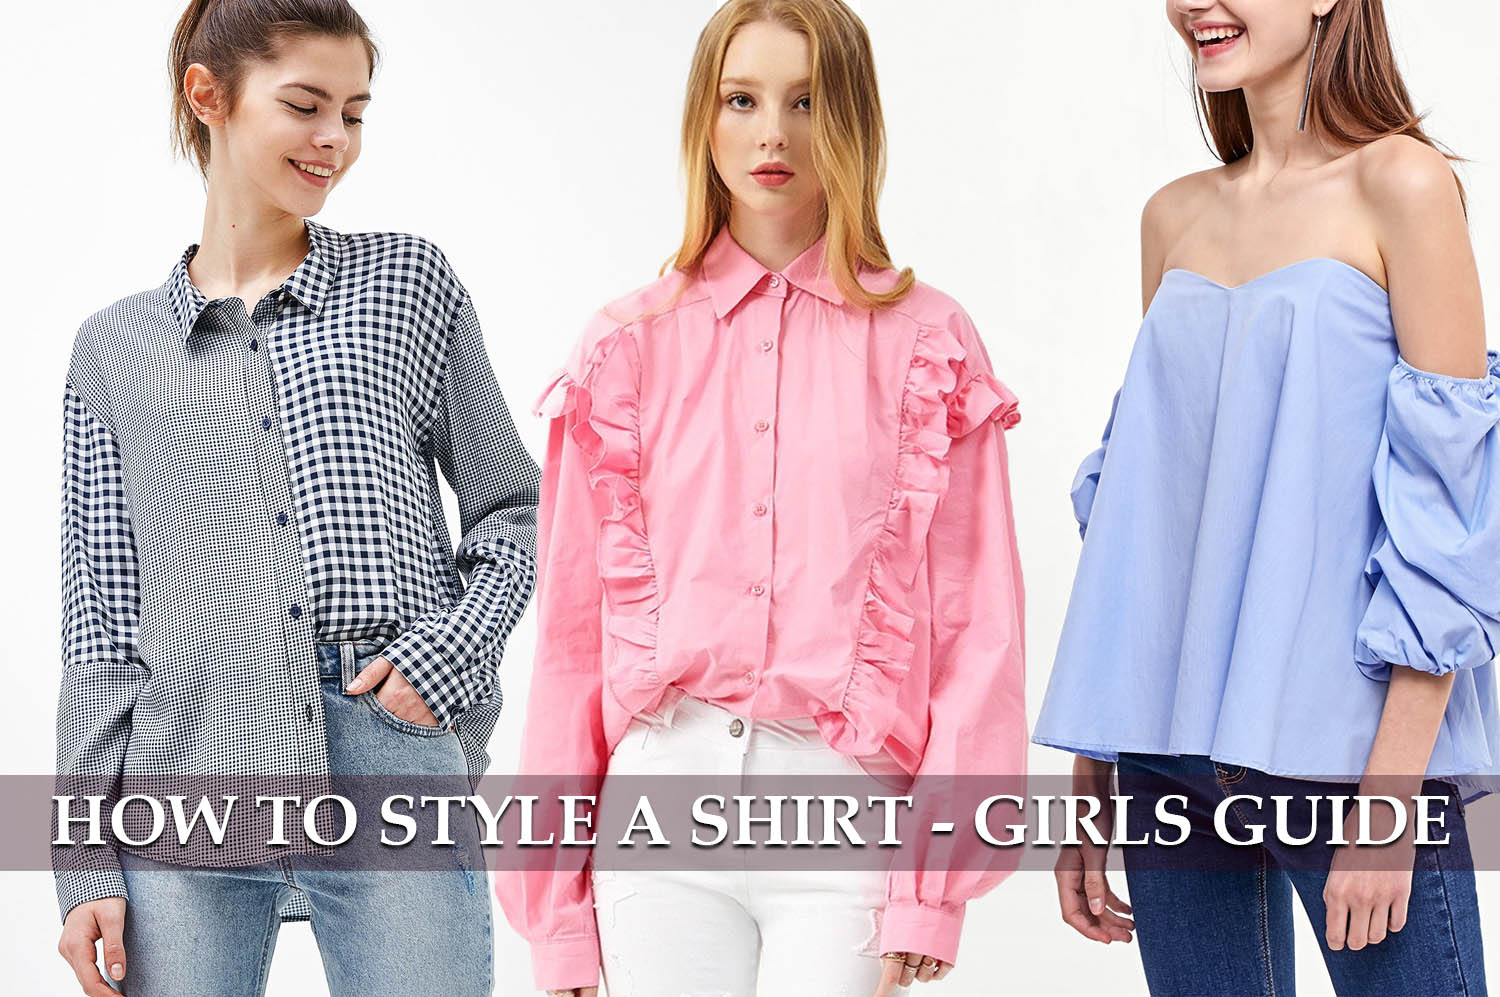 how to style a shirt -guide for woman